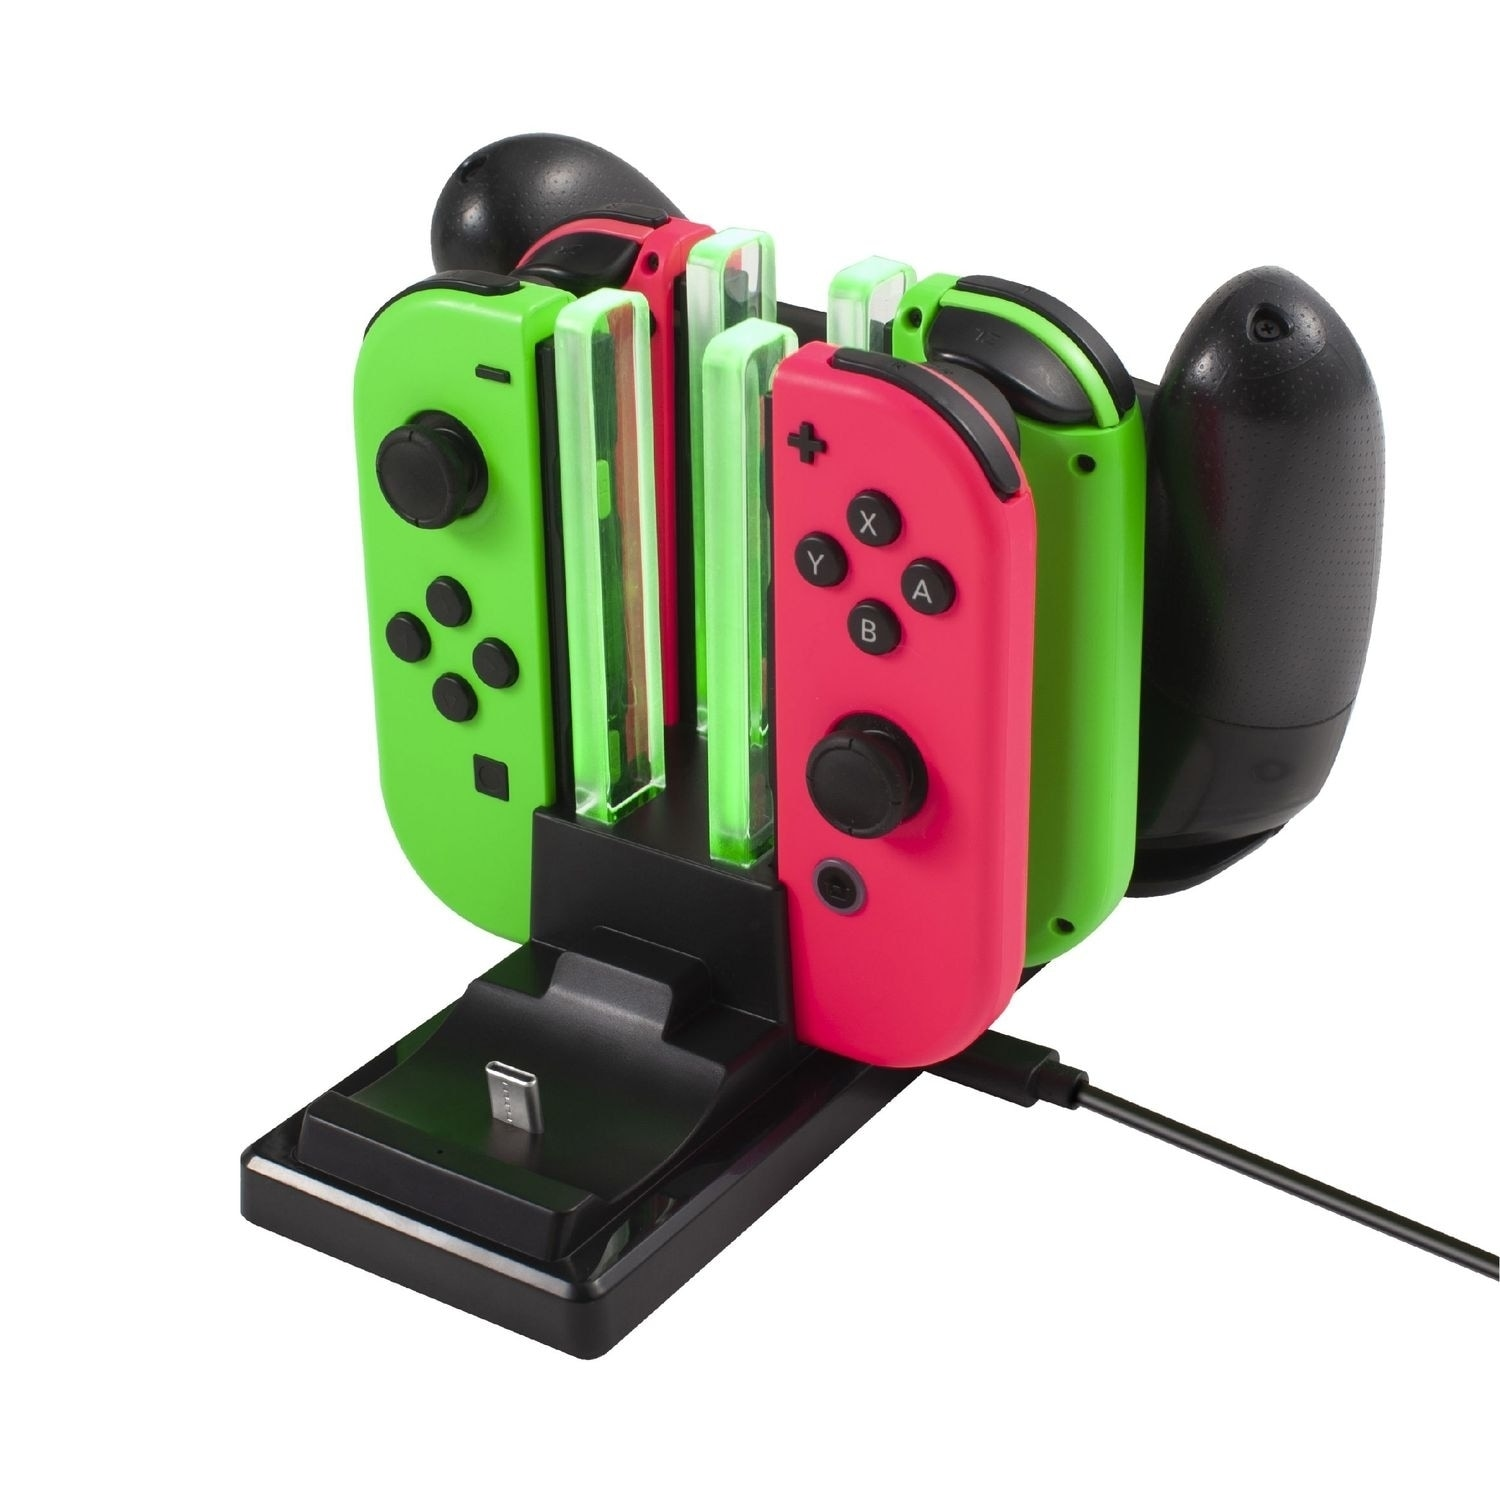 Shop For Switch Controller Charger 6 In 1 Charging Dock For Nintendo Switch Pro Controller Joy Con W Usb Type C Cable By Insten Overstock 30753708